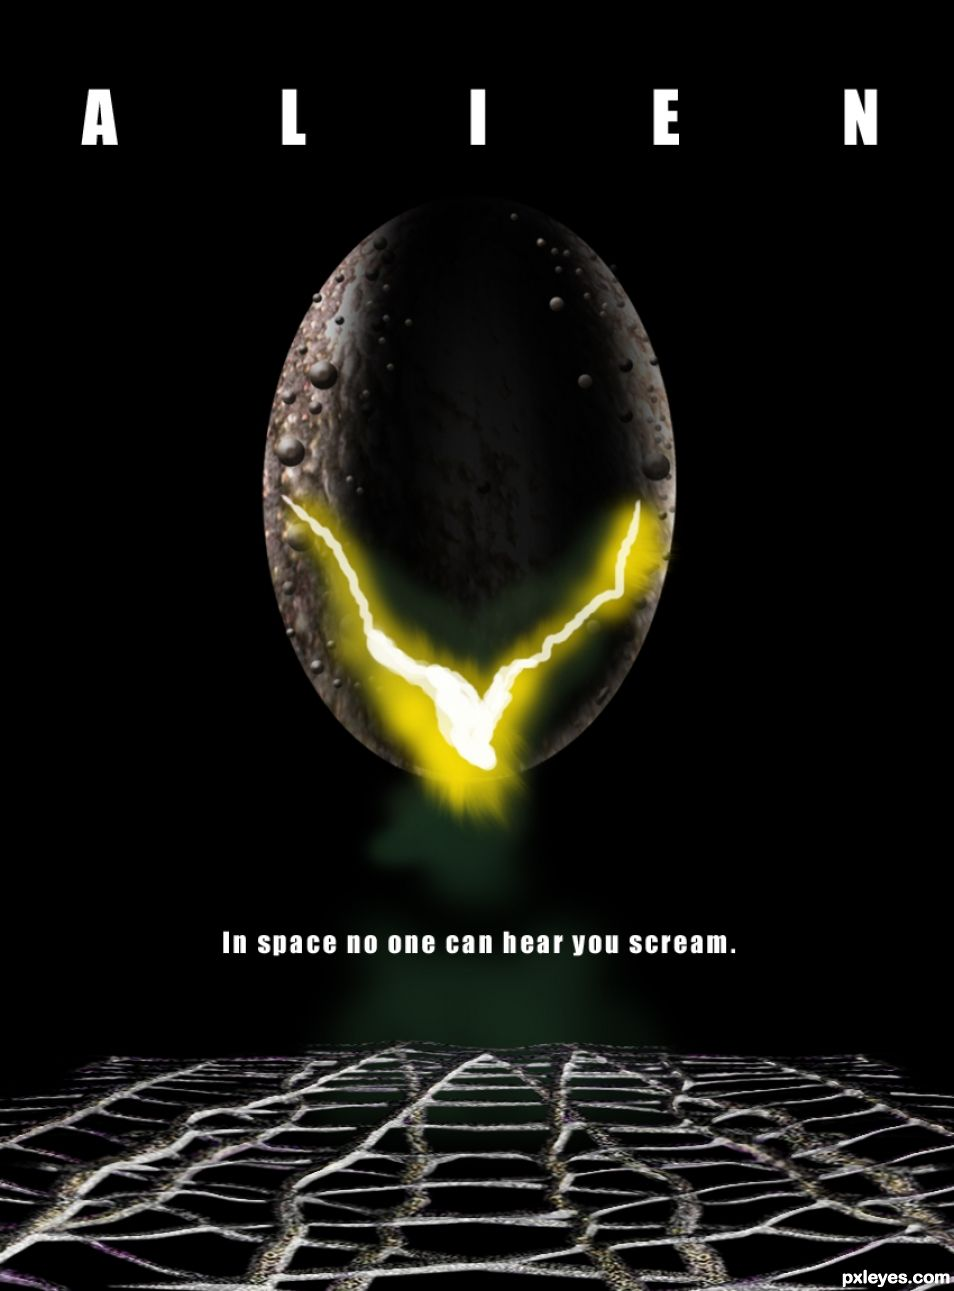 Alien (1979) - Directed by: Ridley ScottStarring: Sigourney Weaver, John Hurt, Harry Dean Anderson, Ian Holm, Tom Skerritt, Veronica Cartwright, Yaphet KottoRated: R for Sci-Fi Violence/Gore and LanguageRunning Time: 1 h 56 mTMM Score: 5 stars out of 5STRENGTHS: Pacing, Production Design, Atmosphere, Writing, DirectingWEAKNESSES: Wide Shots of Xenomorph